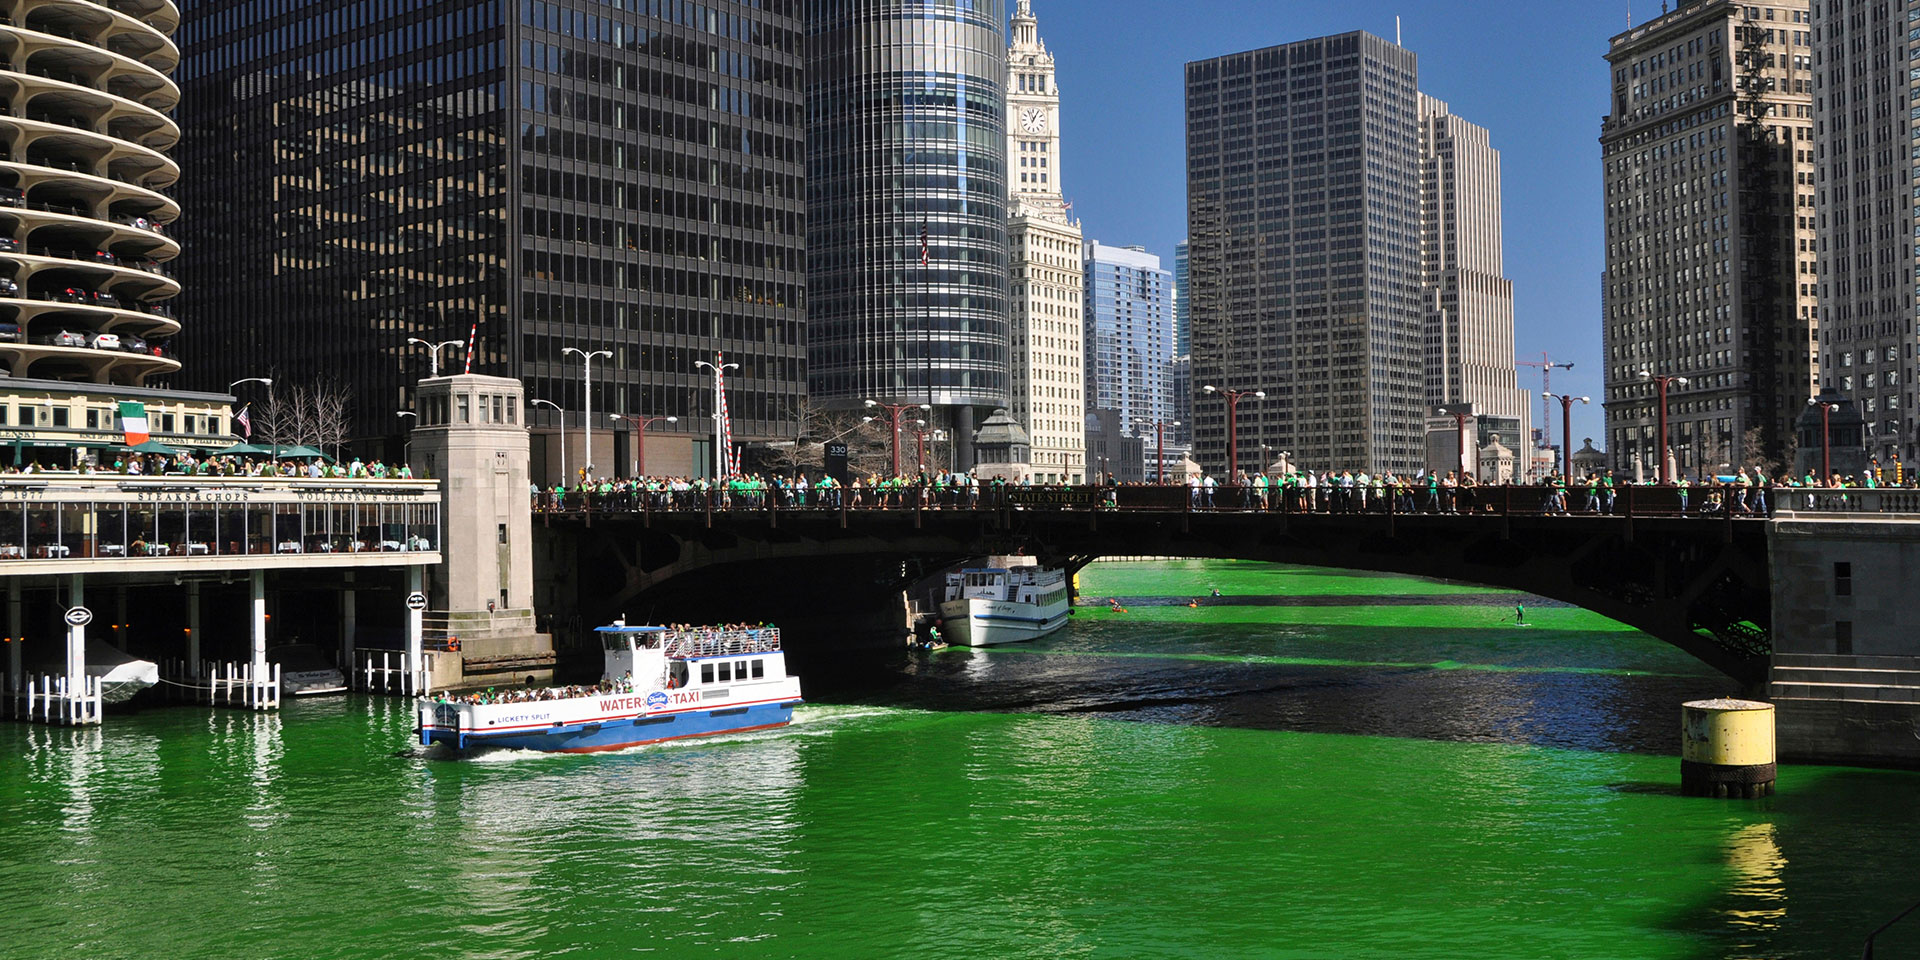 michigan avenue chicago river green